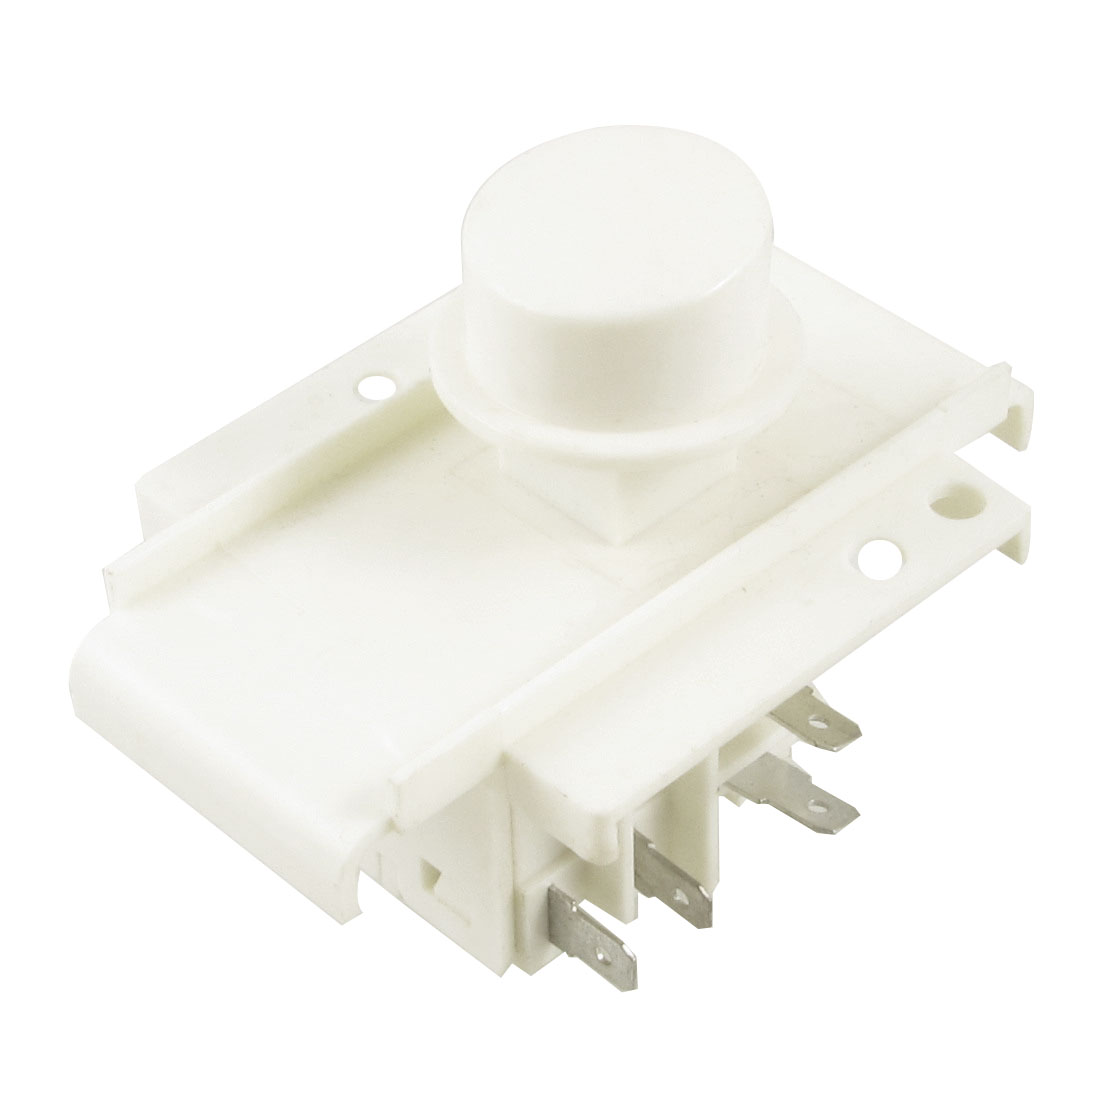 AC 220V/240V 5A 4 Pins NO Latching Power Switch for Washing Machine Washer